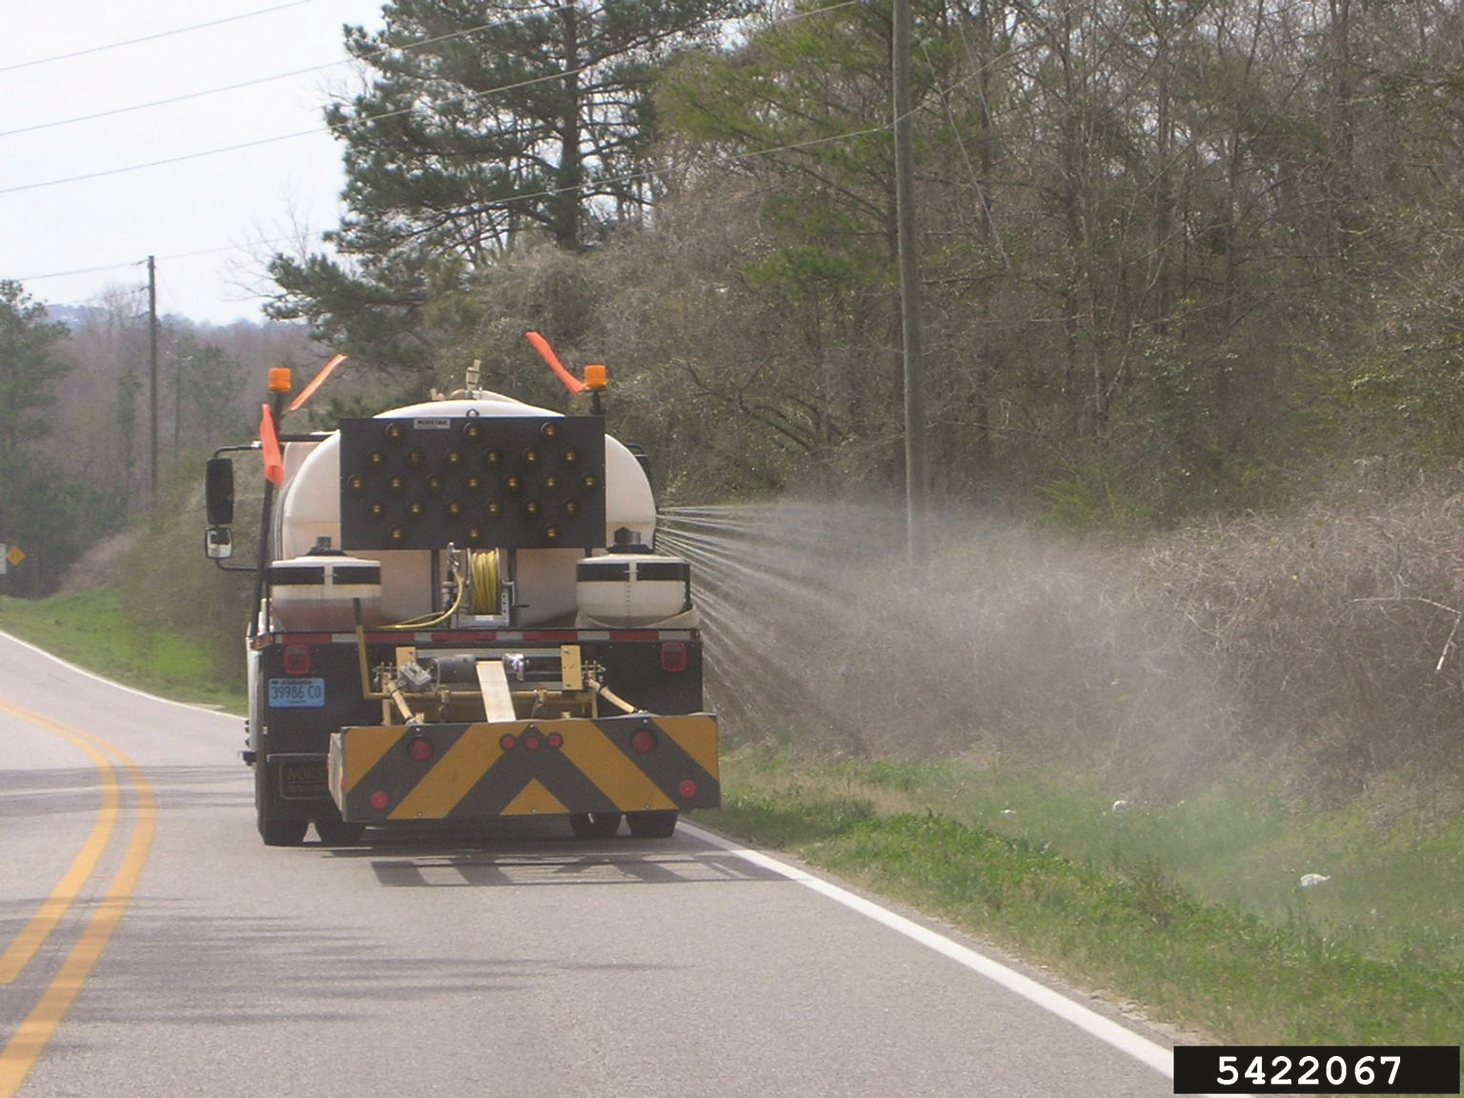 Herbicide sprayed from a truck along the road side